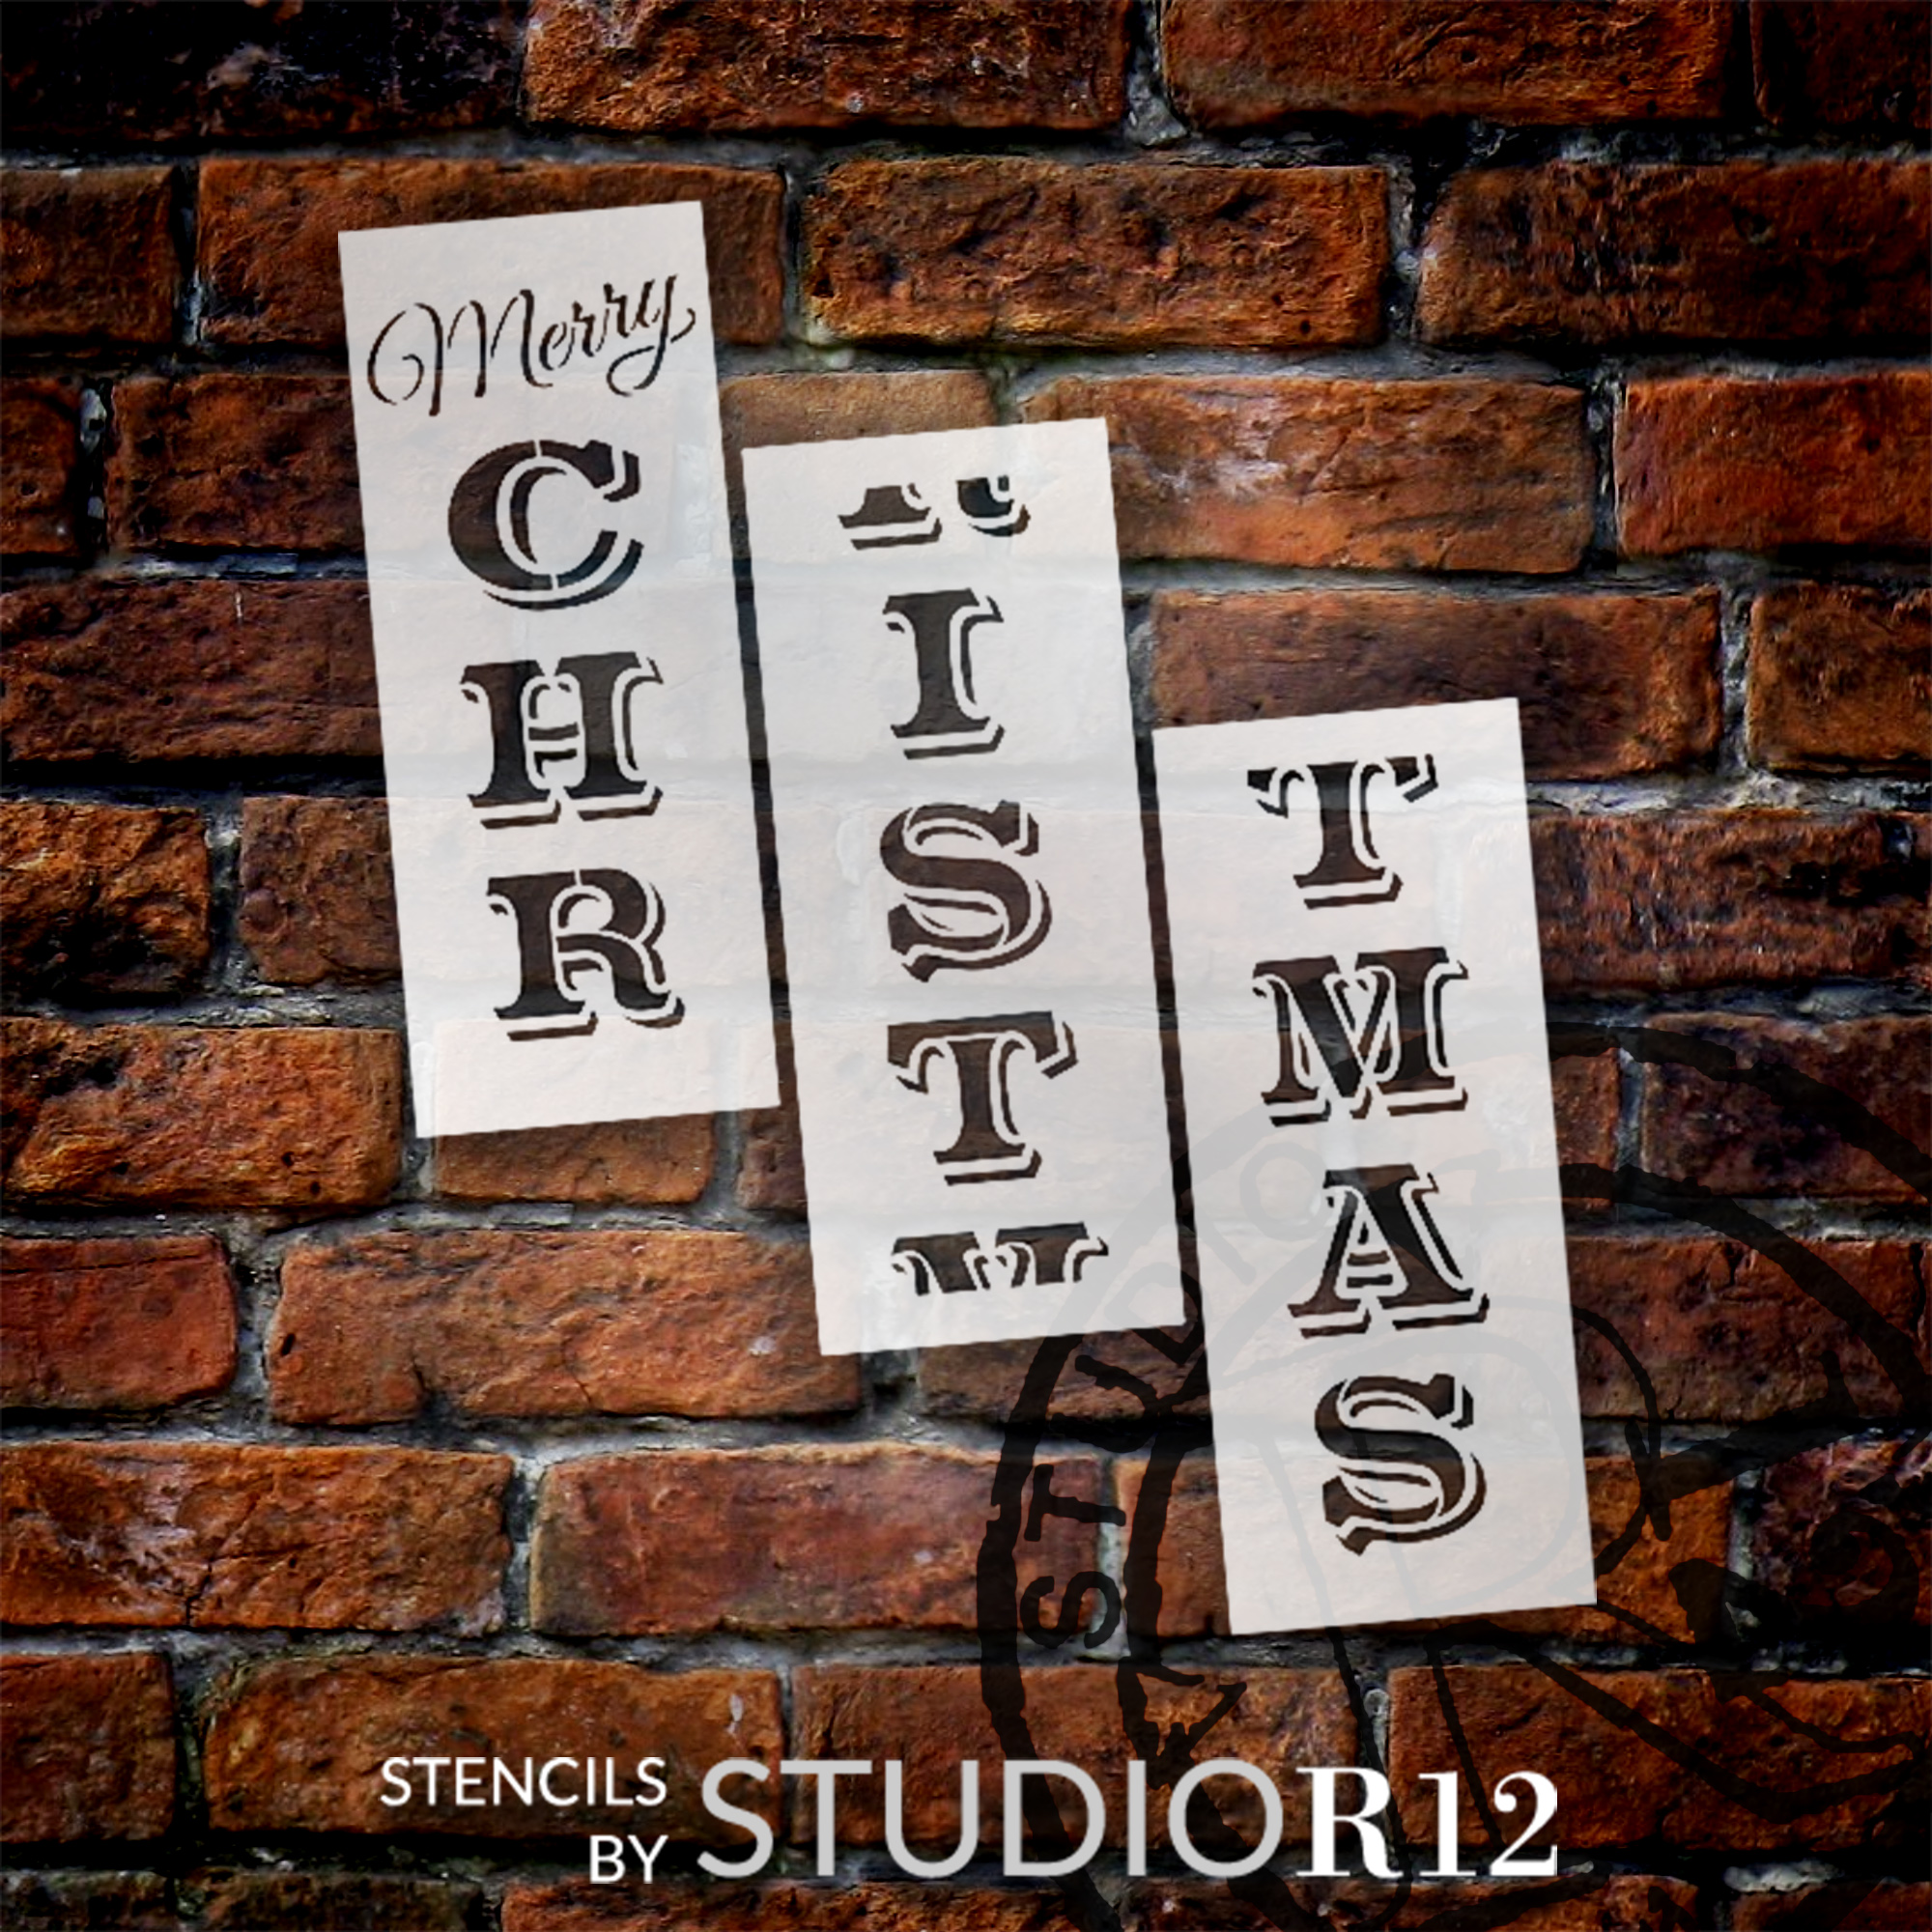 Merry Christmas Tall Porch Stencil by StudioR12   3 Piece   DIY Large Vertical Winter Holiday Home Decor   Front Door Entryway   Craft & Paint Wood Leaner Signs   Reusable Mylar Template   Size 6ft